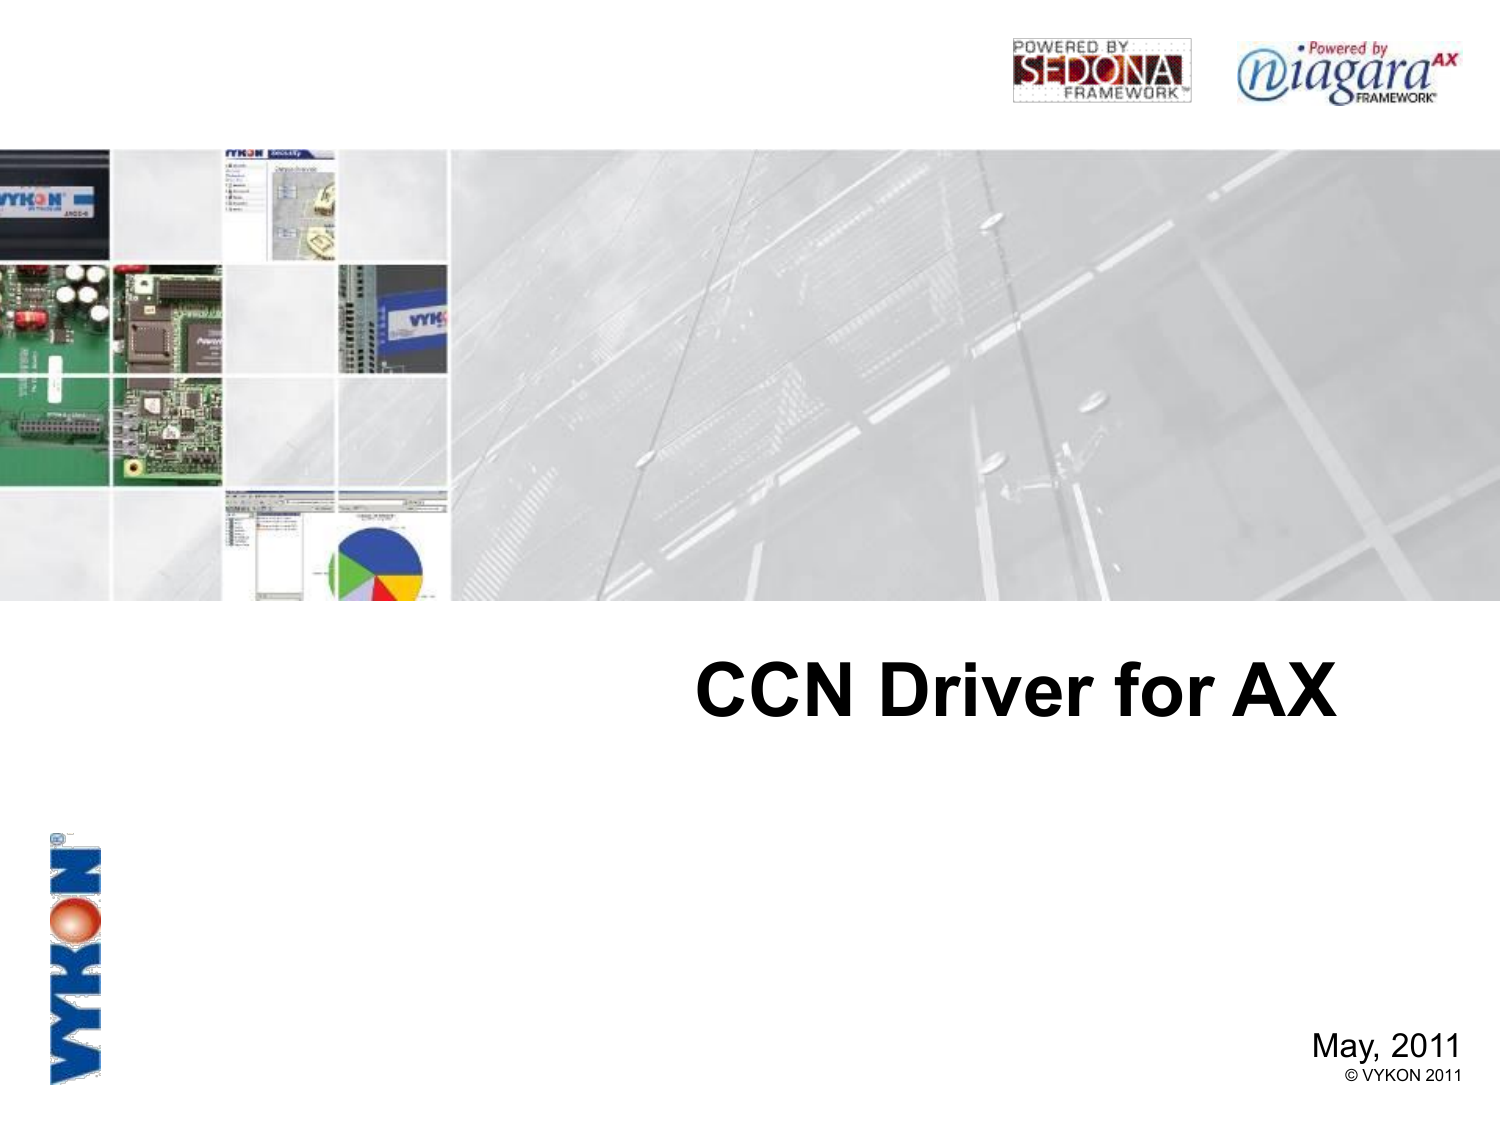 CARRIER CCN AX WINDOWS 8.1 DRIVERS DOWNLOAD